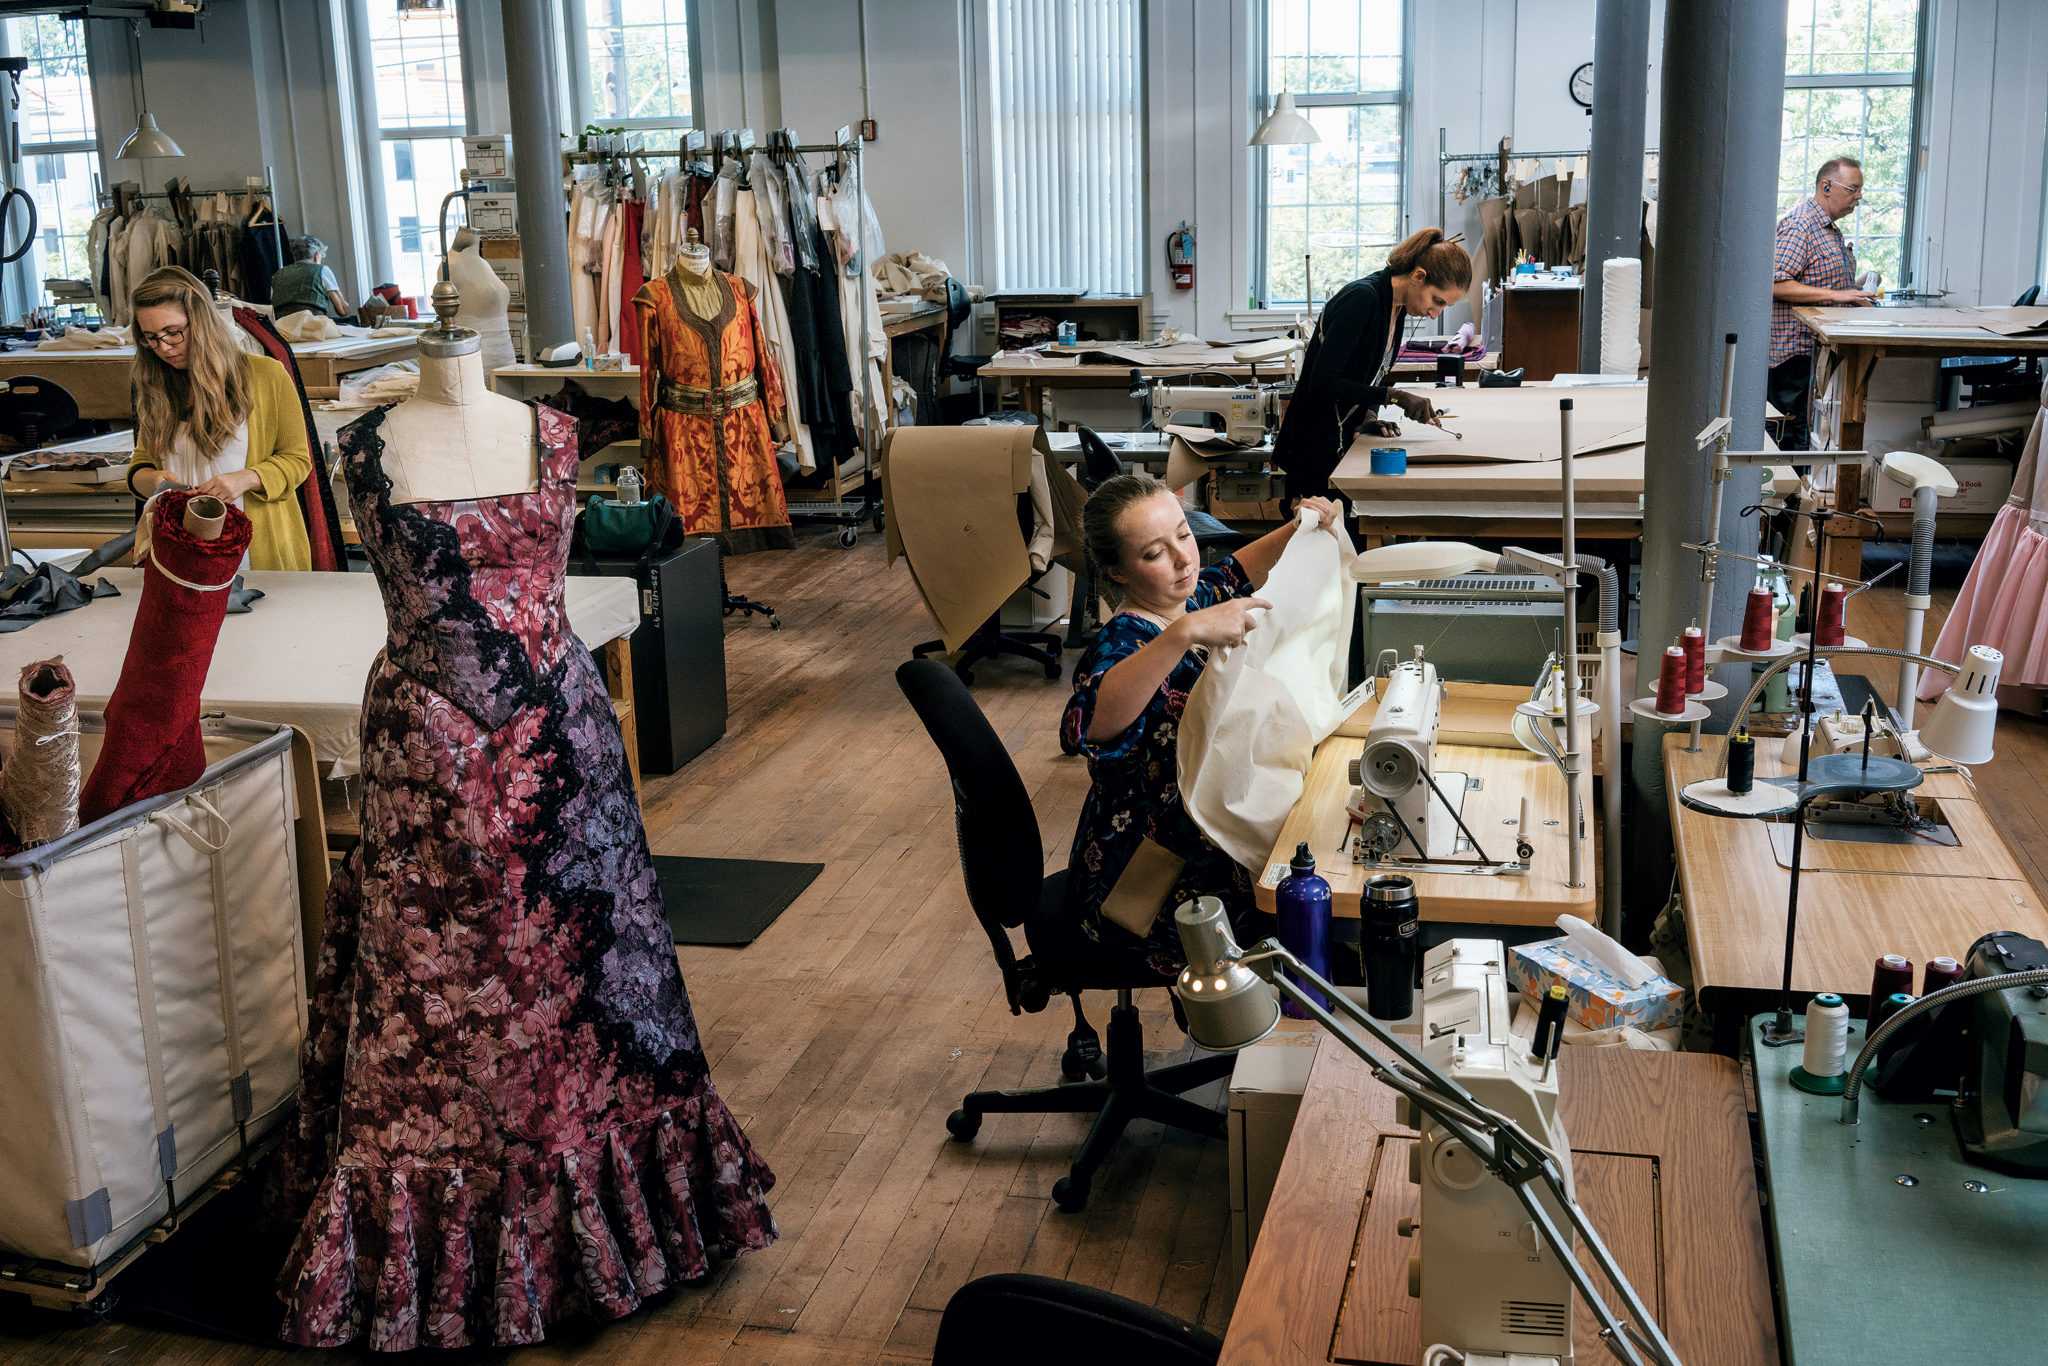 A Behind-the-Scenes Peek at the Washington National Opera's Costume Shop